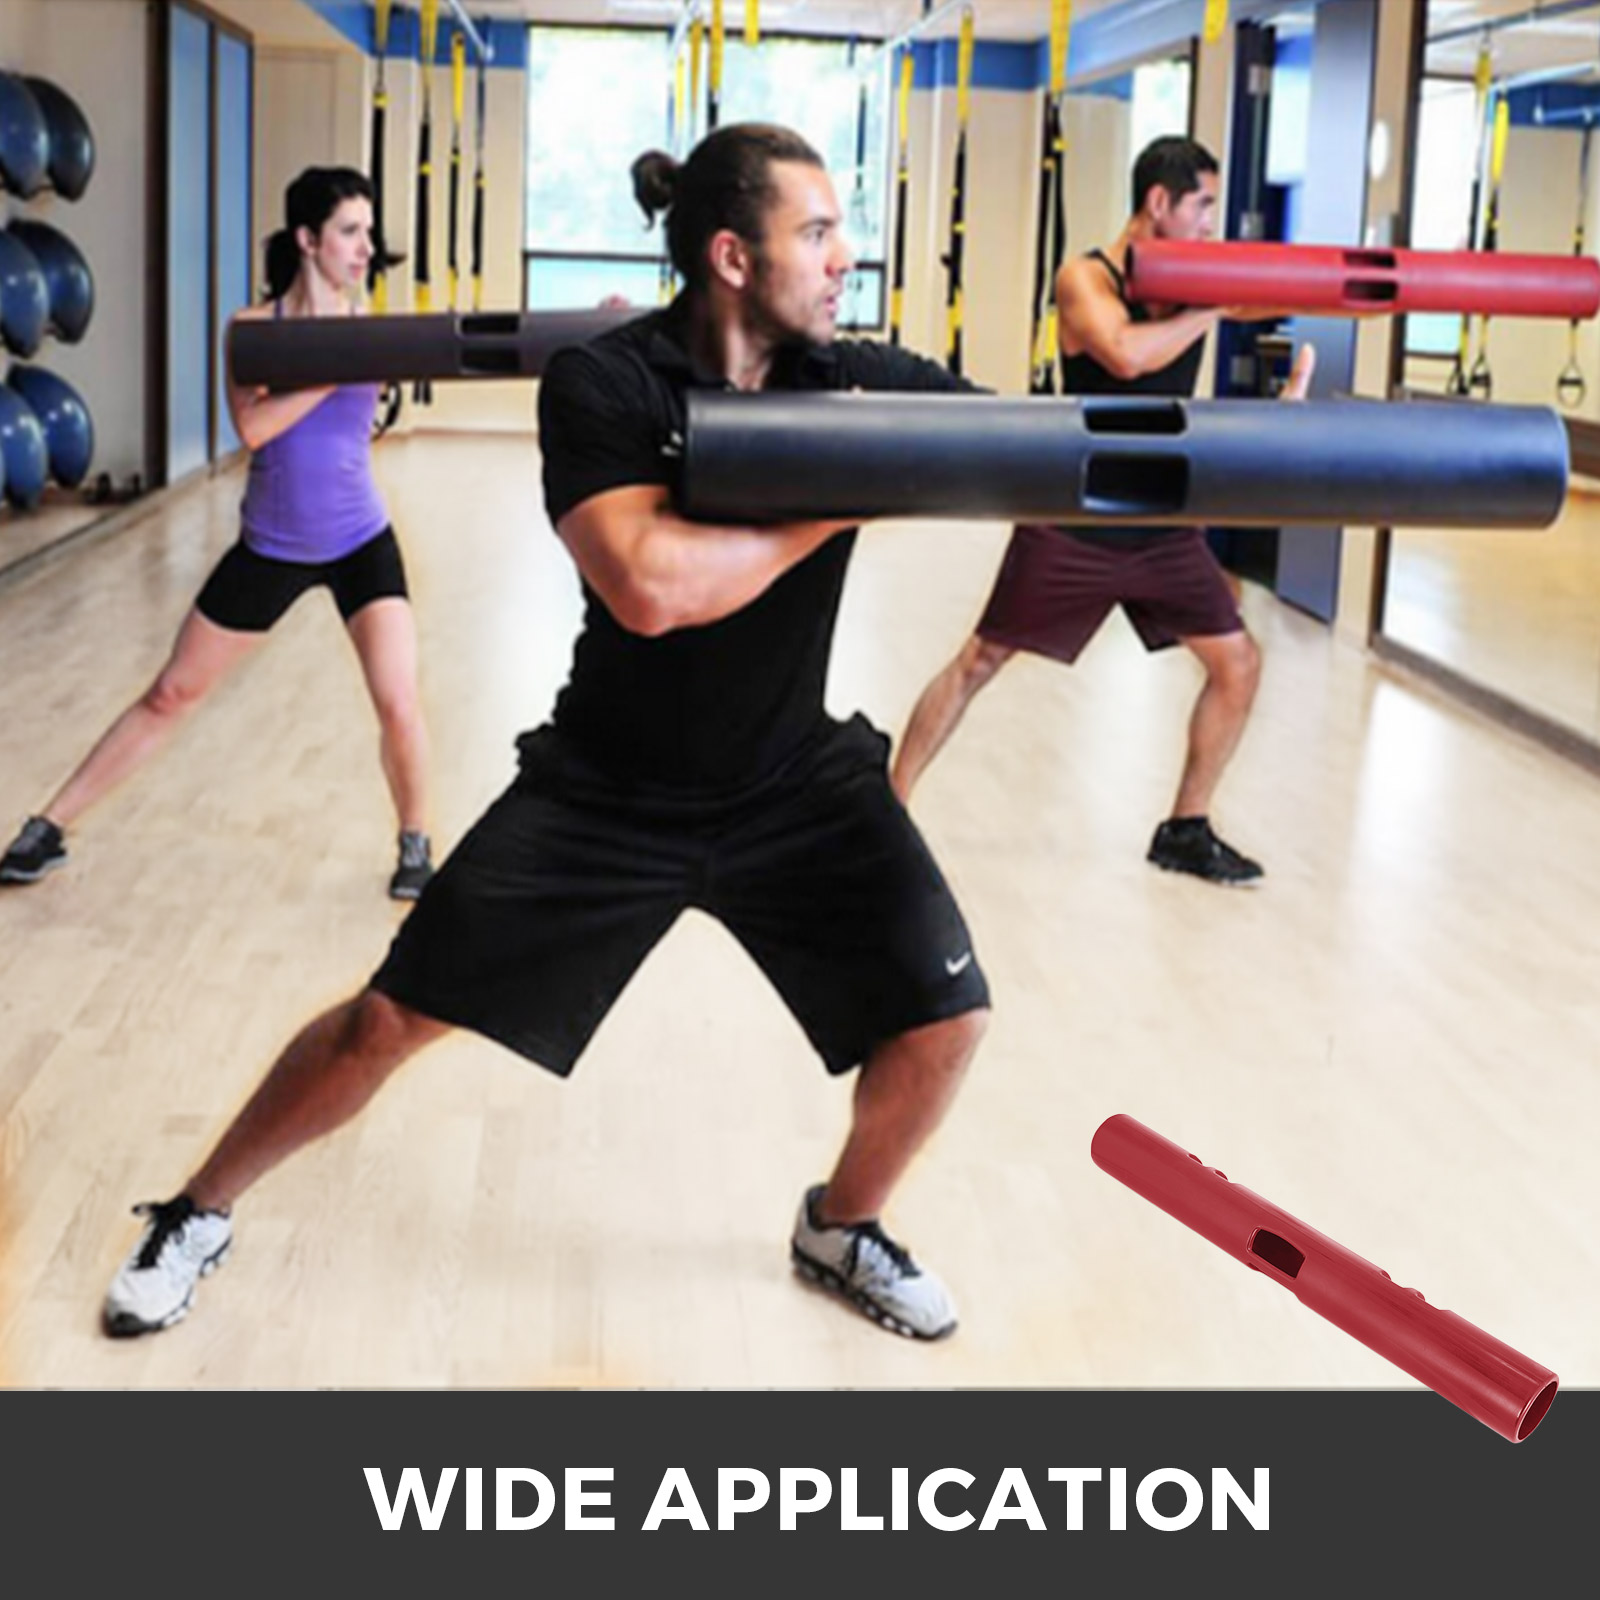 Vipr-Fitpro-Fitness-Tube-Loaded-Movement-Training-weightlifting-4-6-8-10-12-Kg thumbnail 91